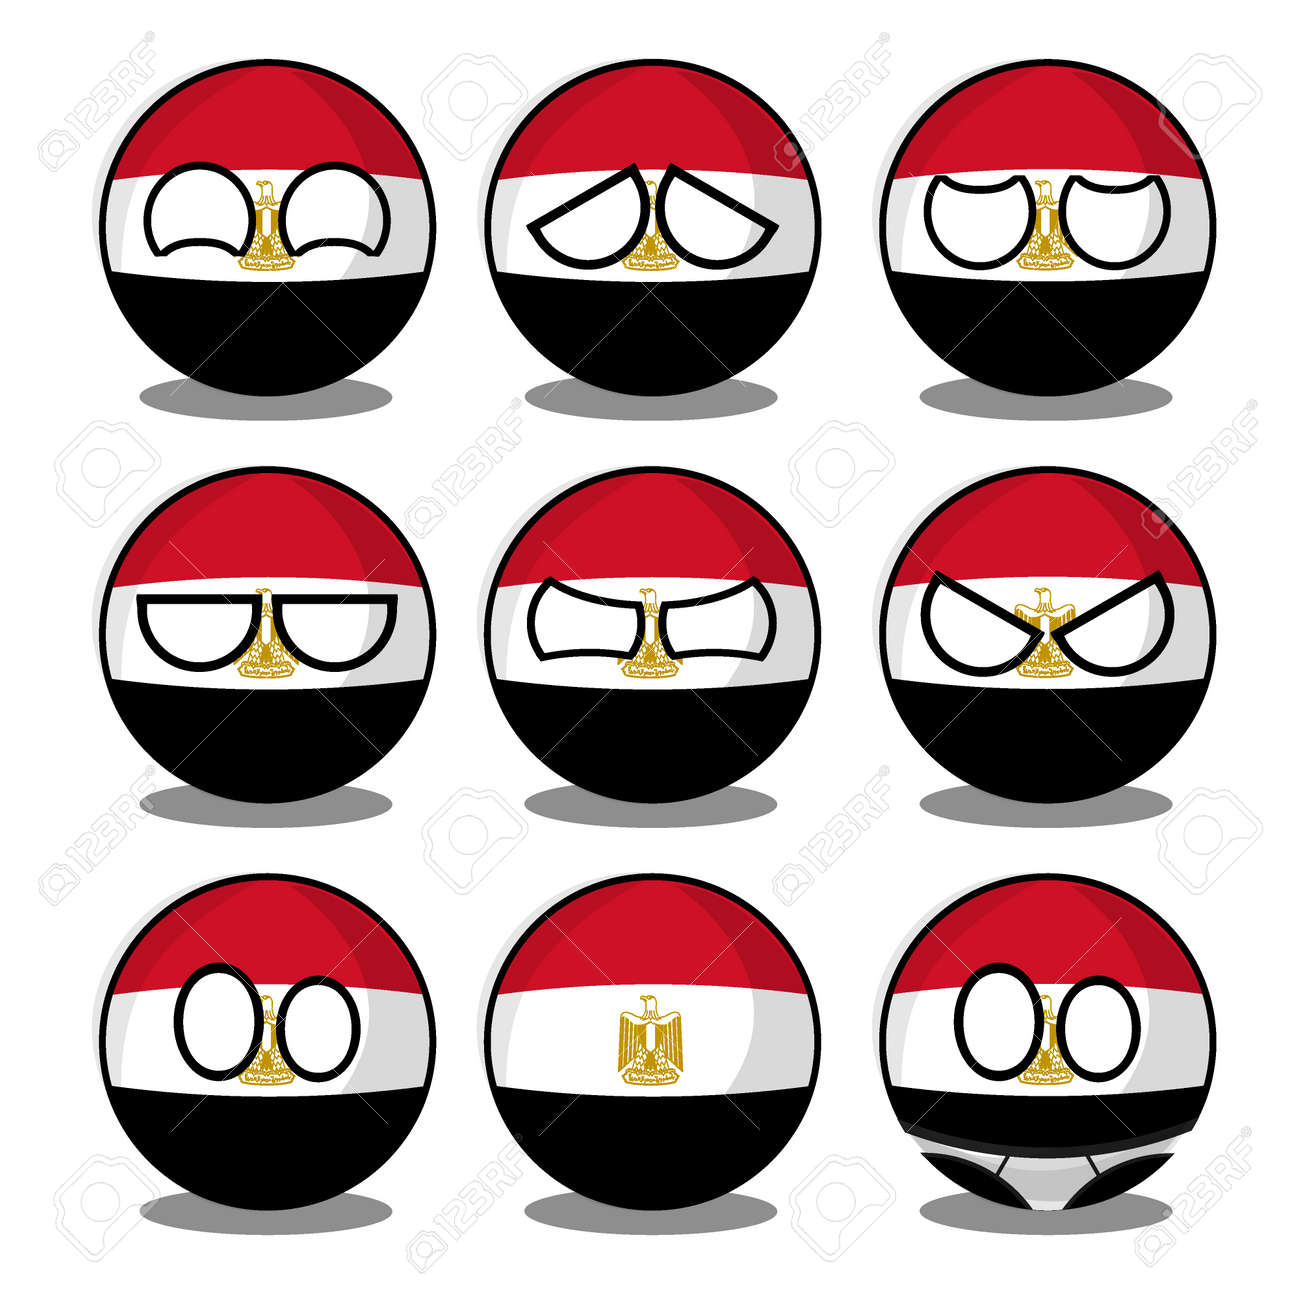 Protests In Egypt Polandball